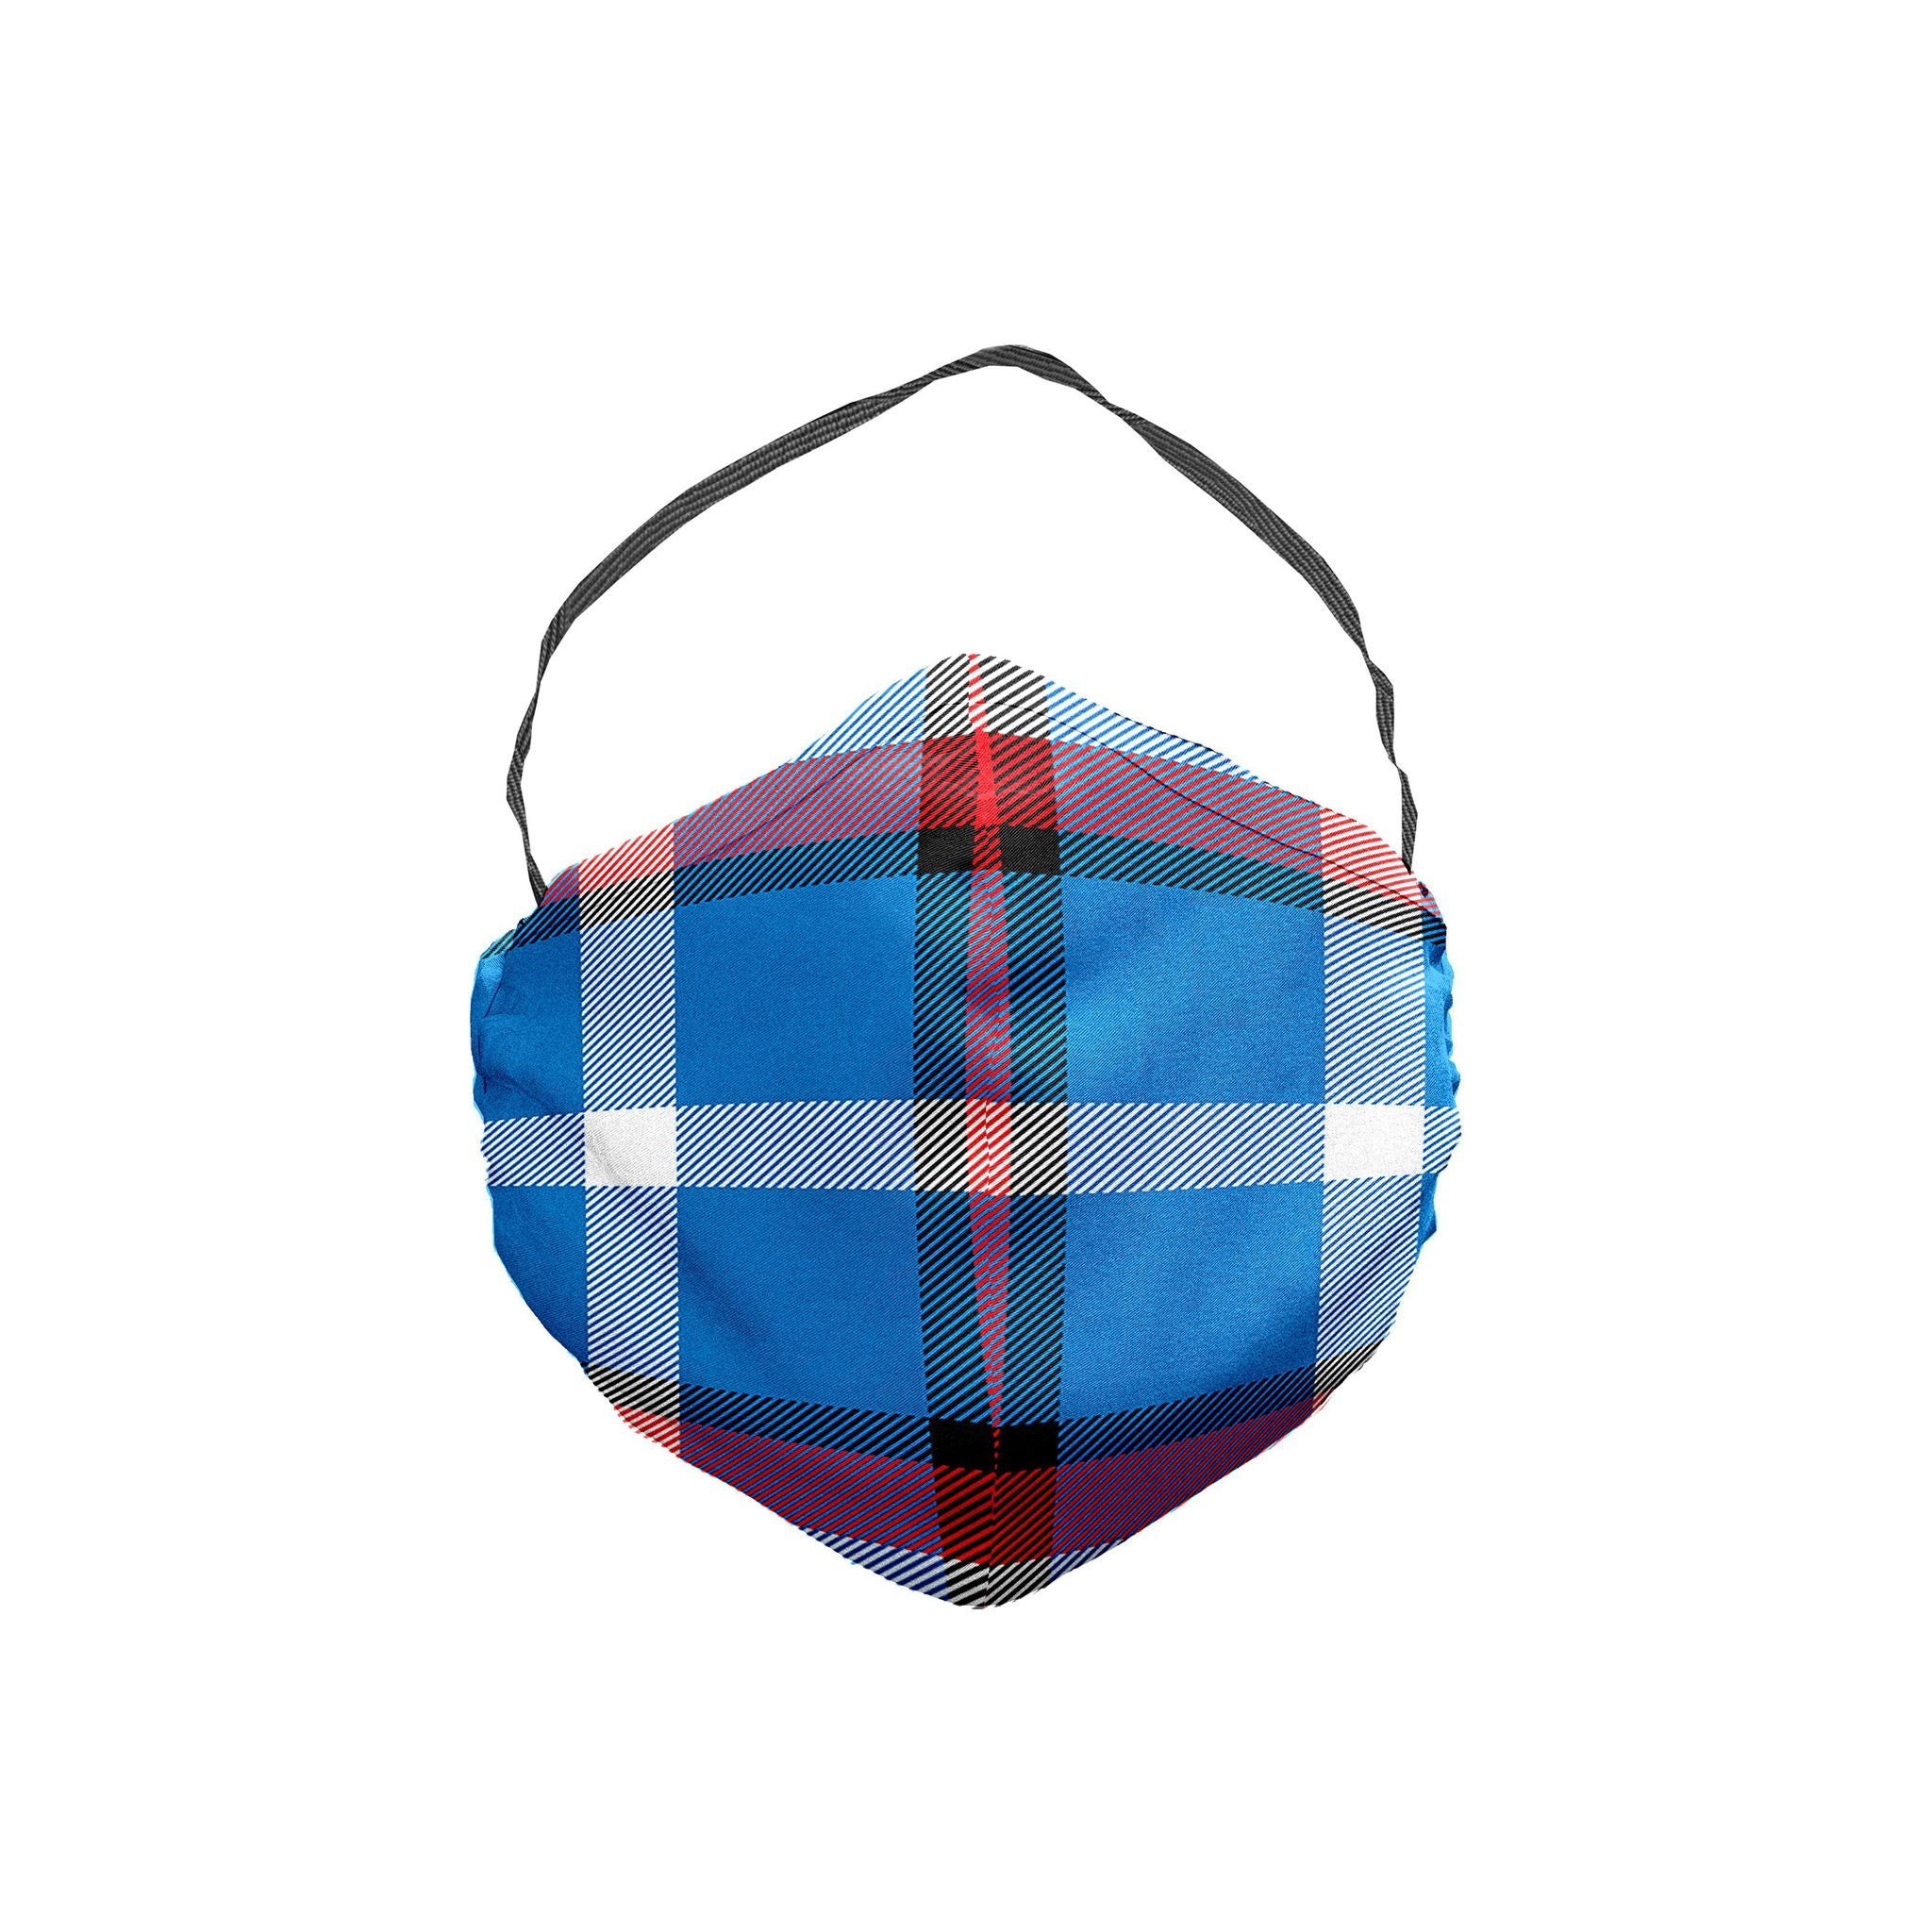 The Captain America Plaid Face Mask 5 Pack